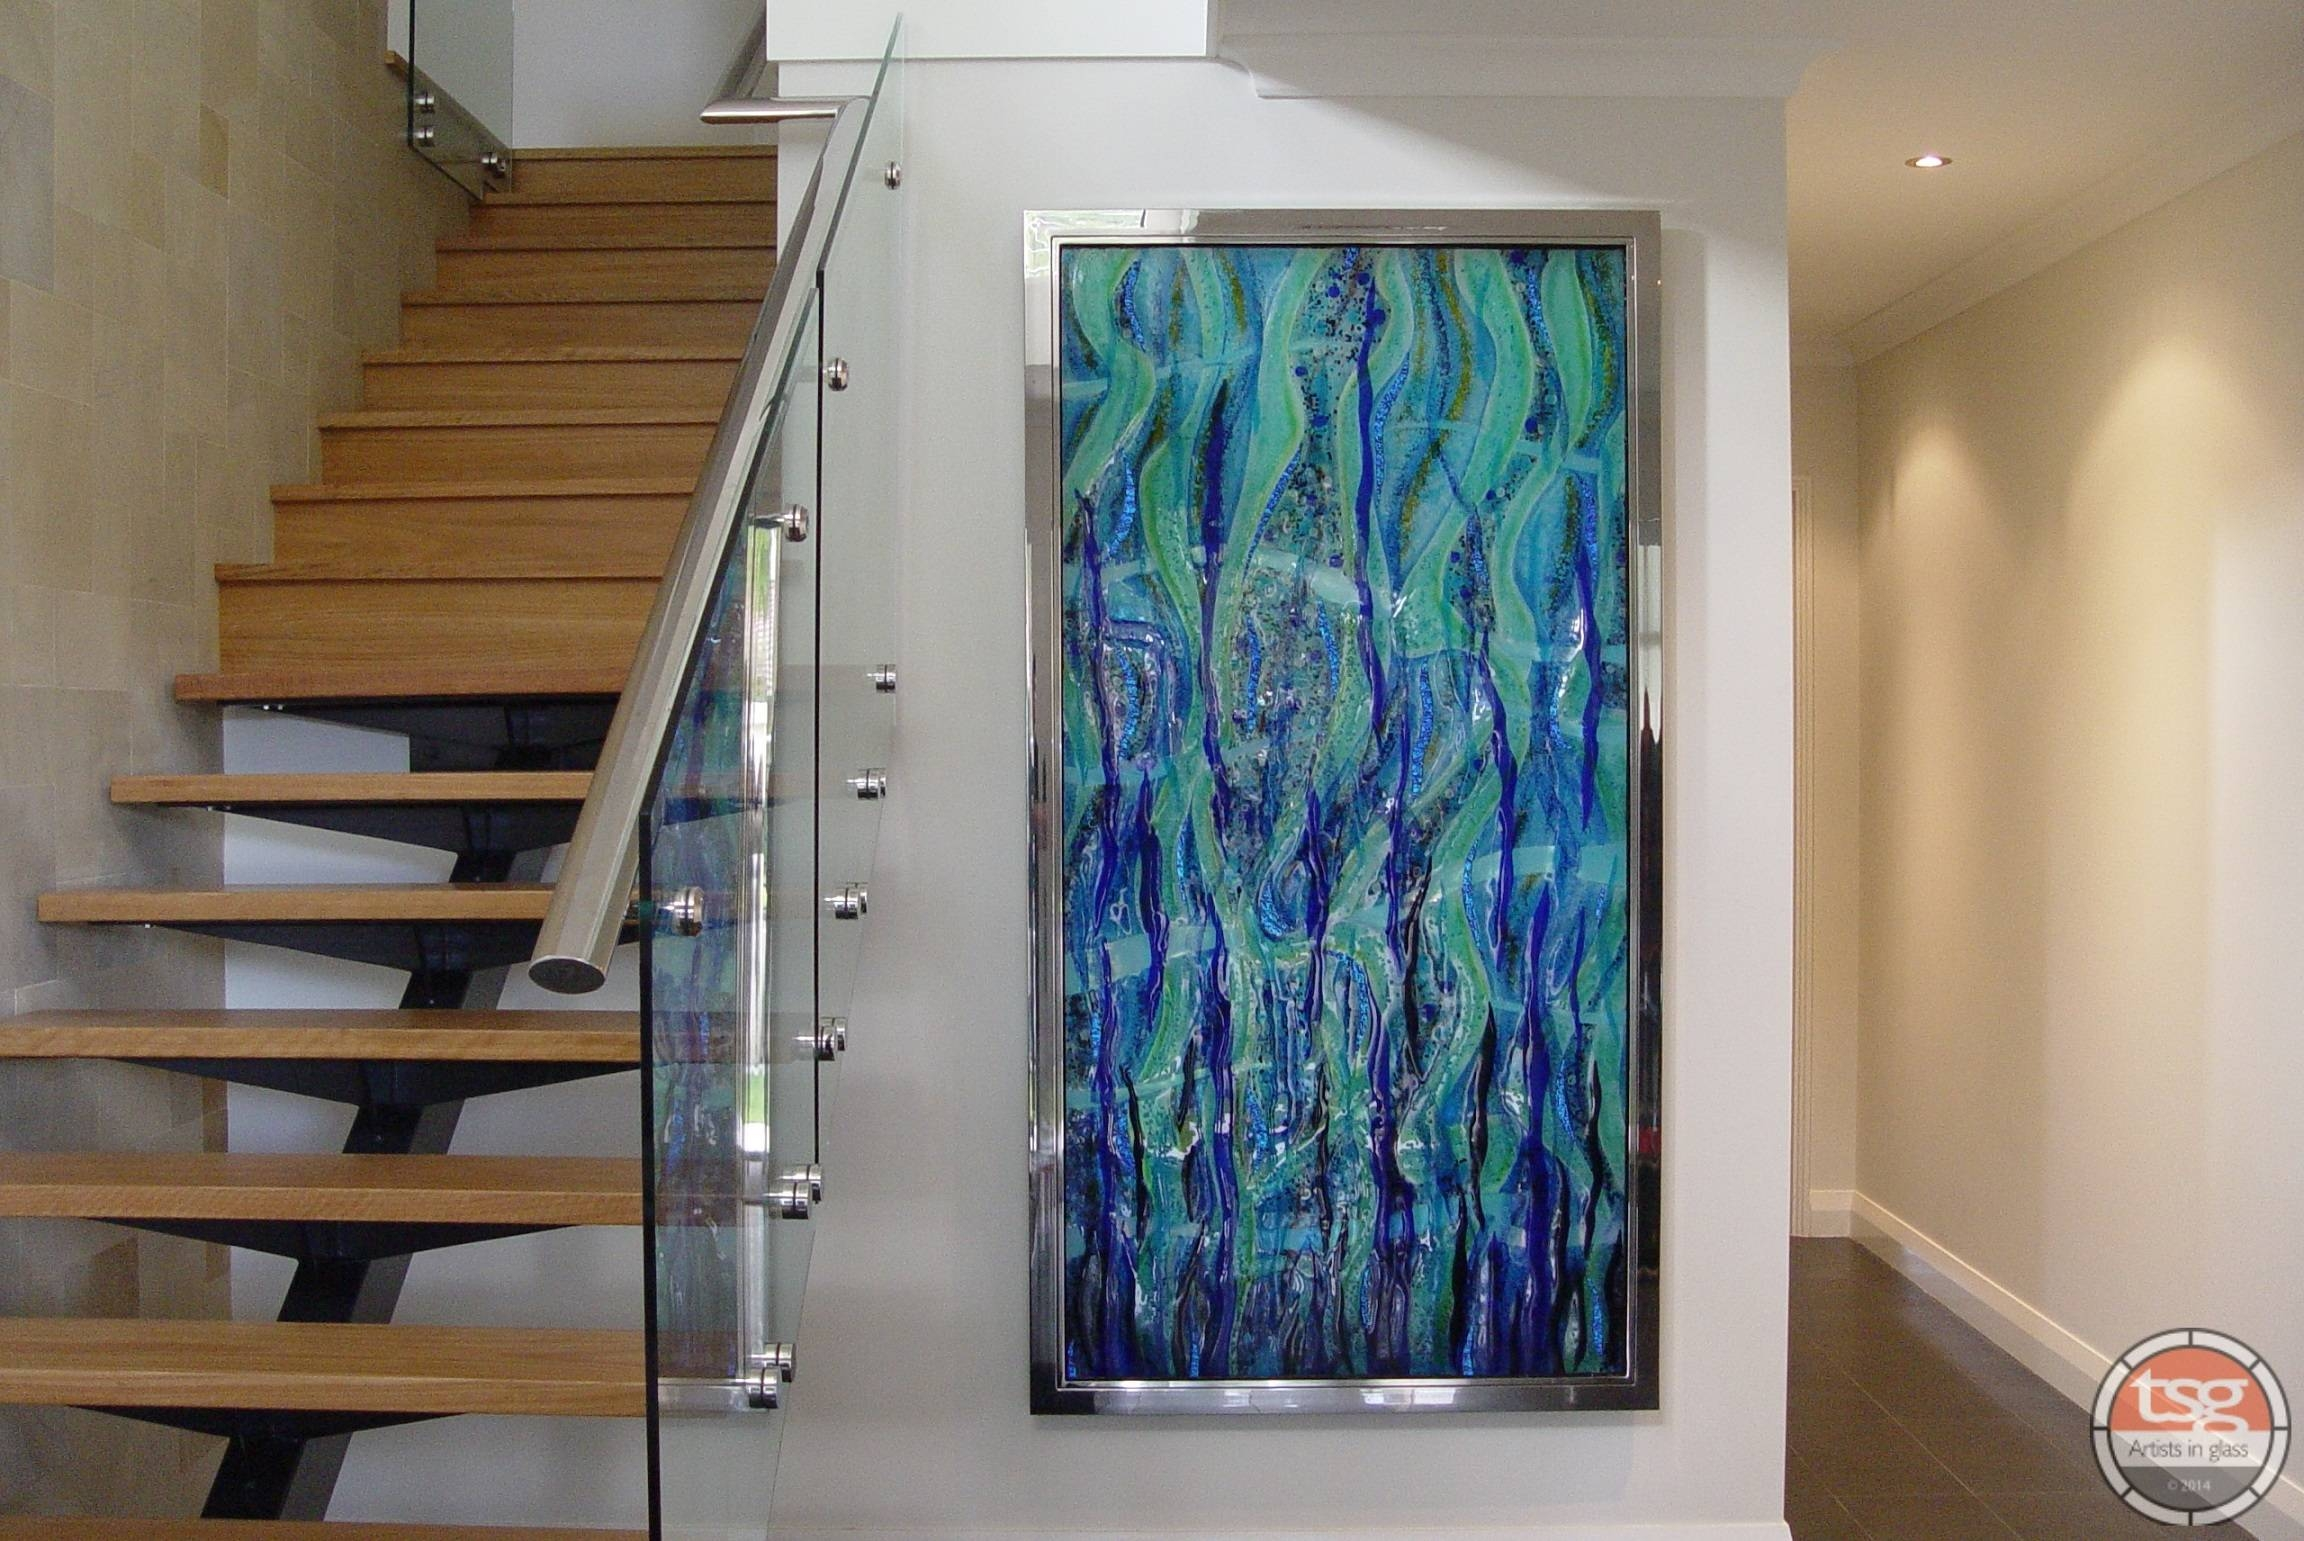 Contemporary Art Glass | Tsg With Regard To 2017 Glass Wall Art Panels (View 10 of 20)